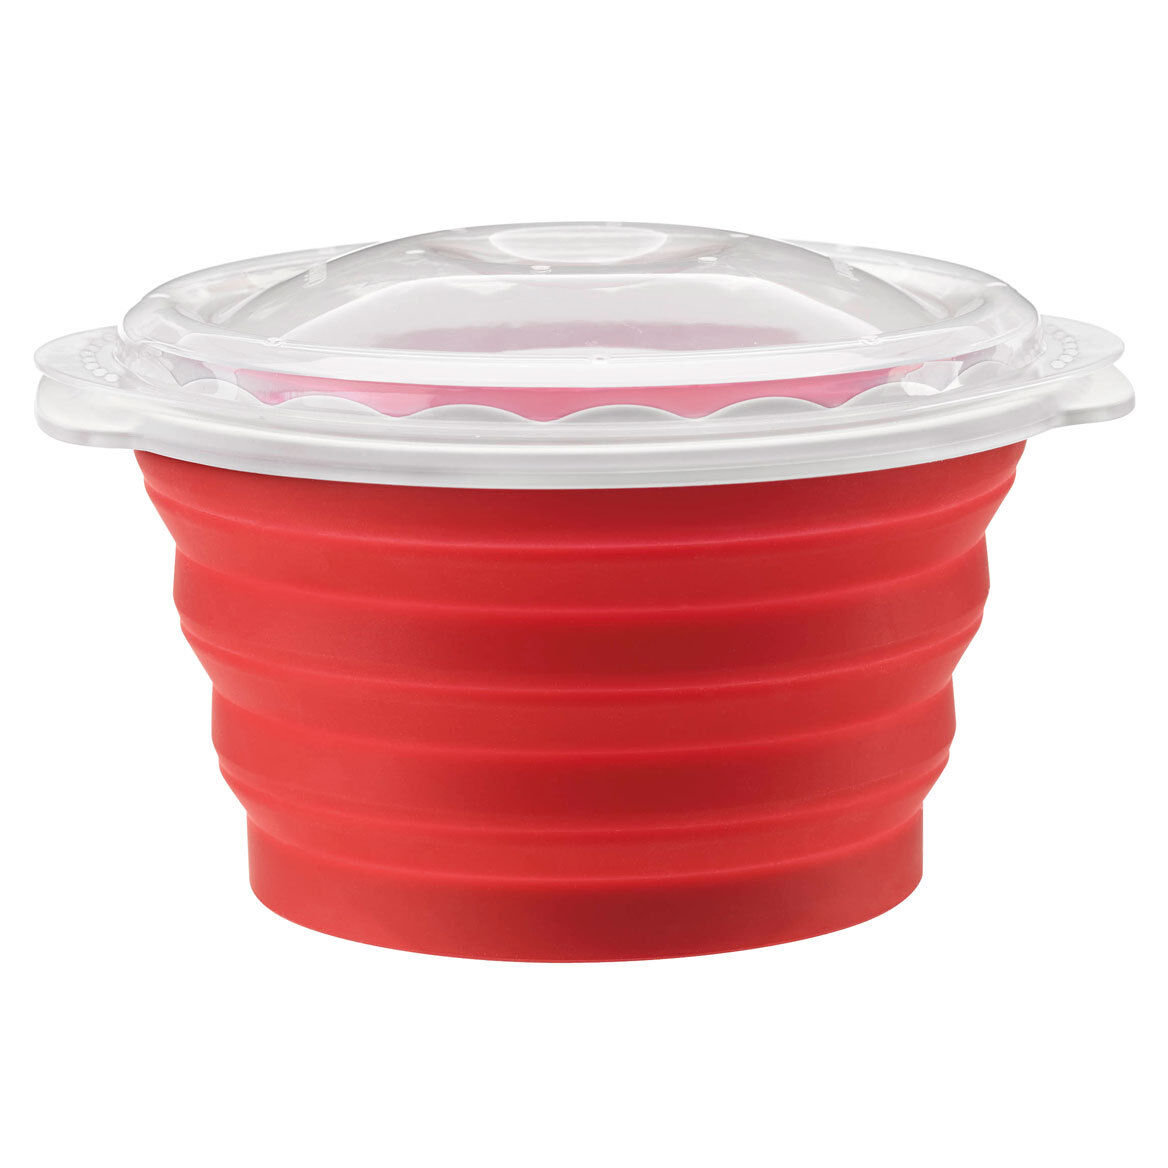 Cuisinart Collapsible Red Microwave Popcorn Maker Silicone V